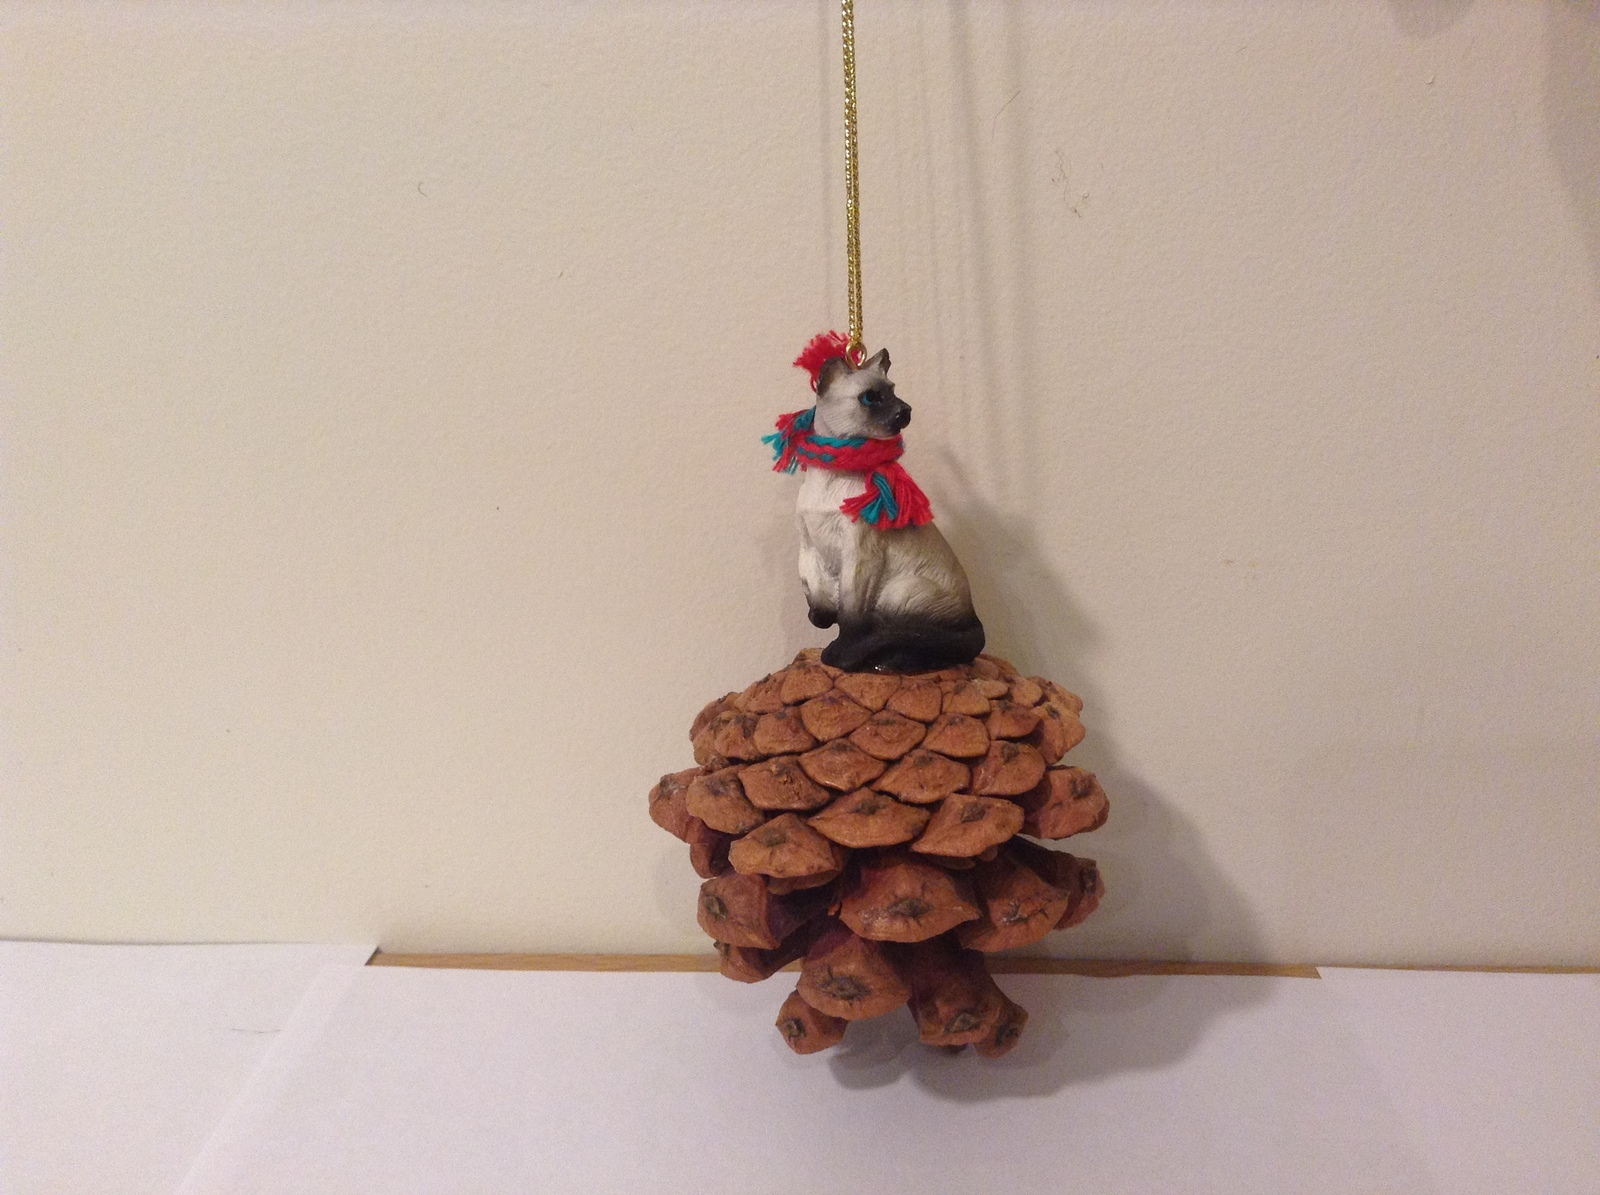 Siamese Cat Real Pinecone Pet Ornament Decoration with Red/Green Scarf, New